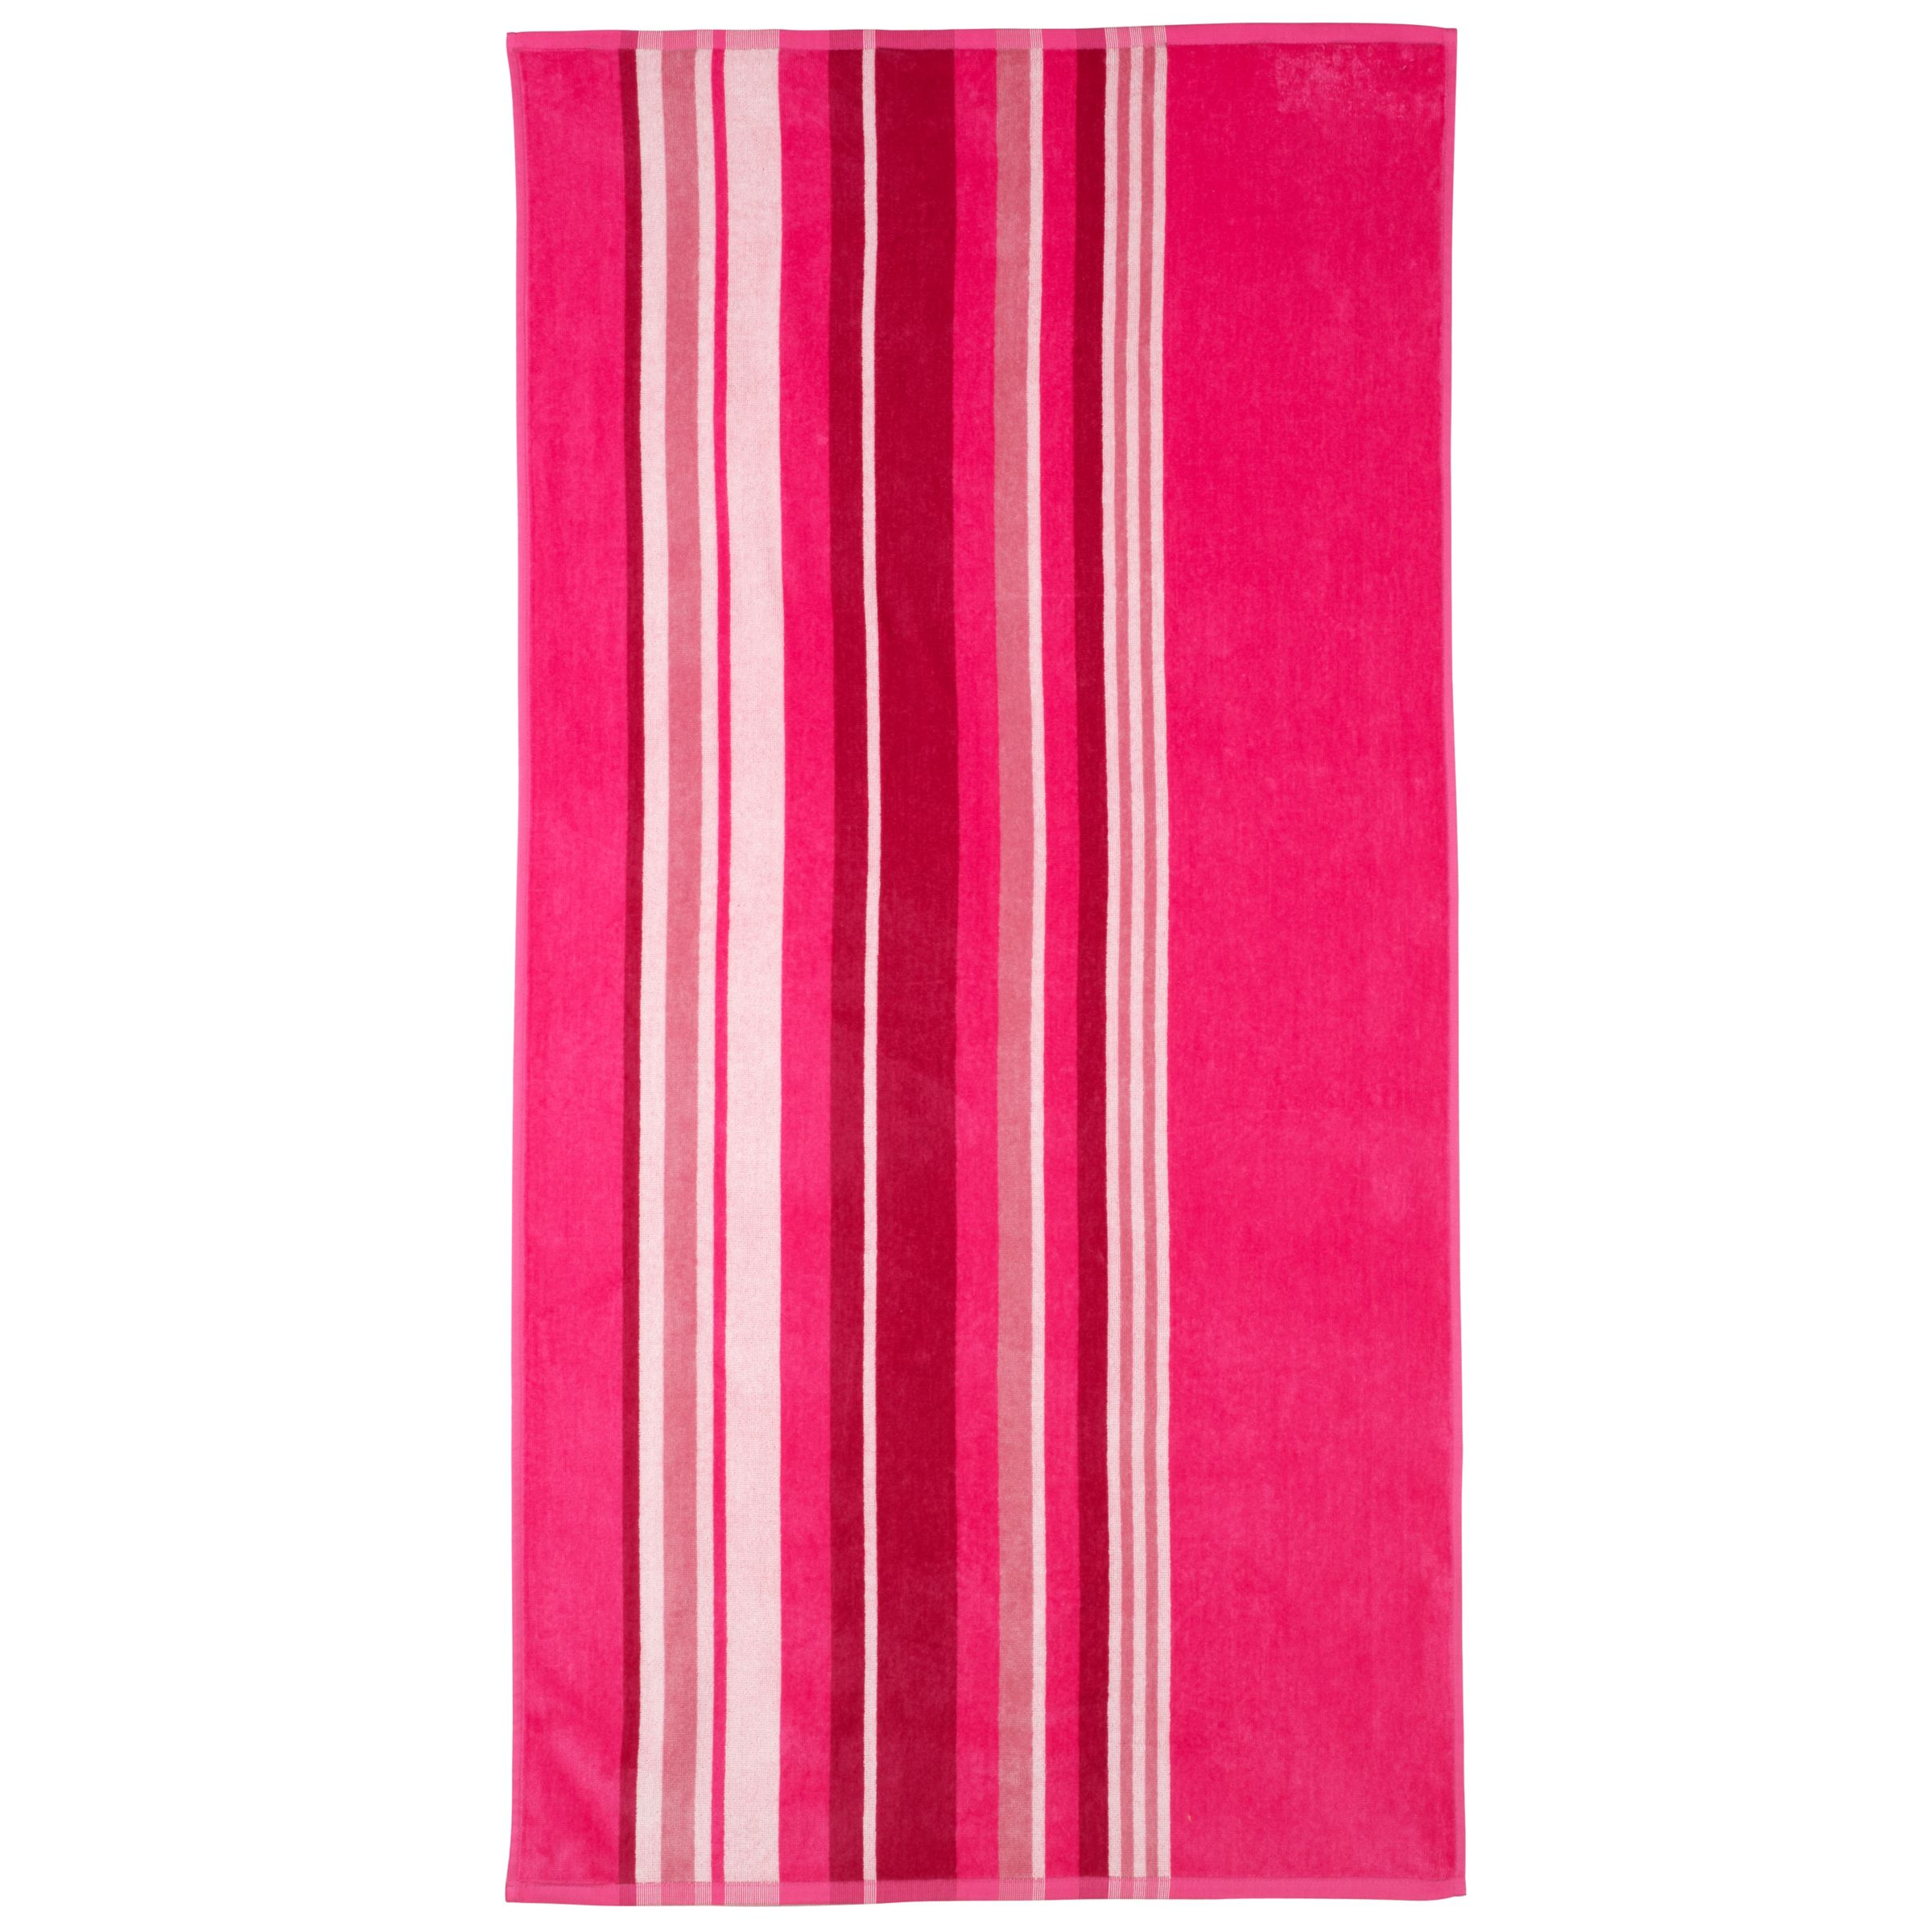 John Lewis Pink Stripe Beach Towel